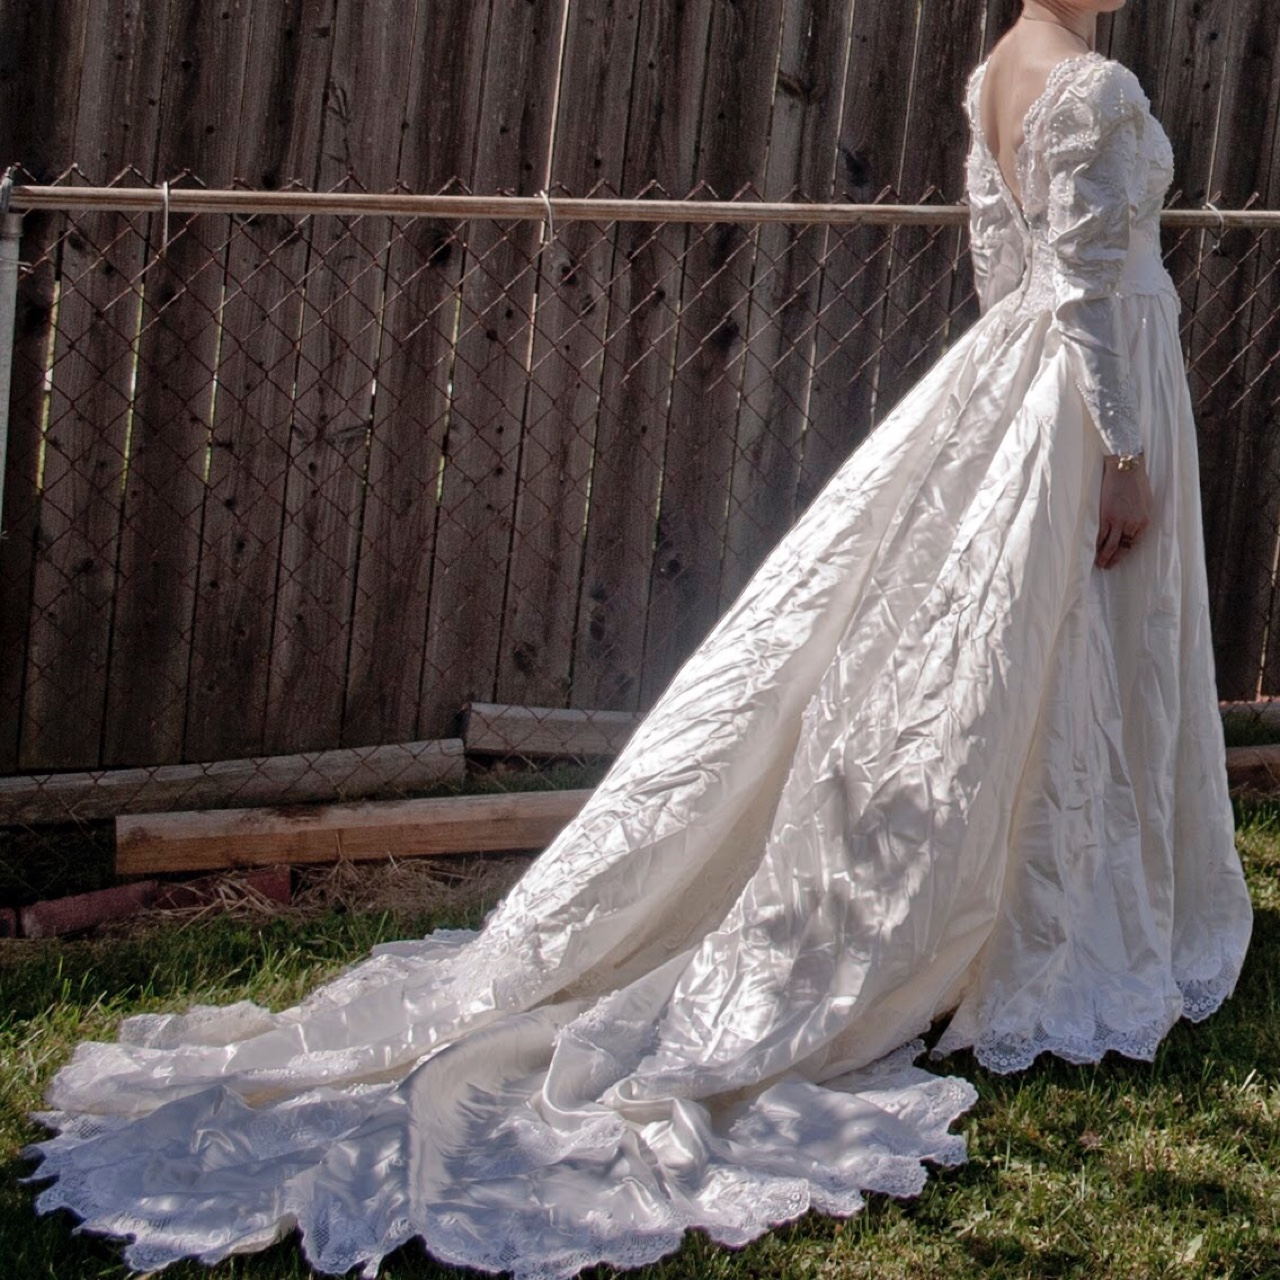 80s Wedding Dress.This Vintage 80s Wedding Dress Is An Example Of Depop